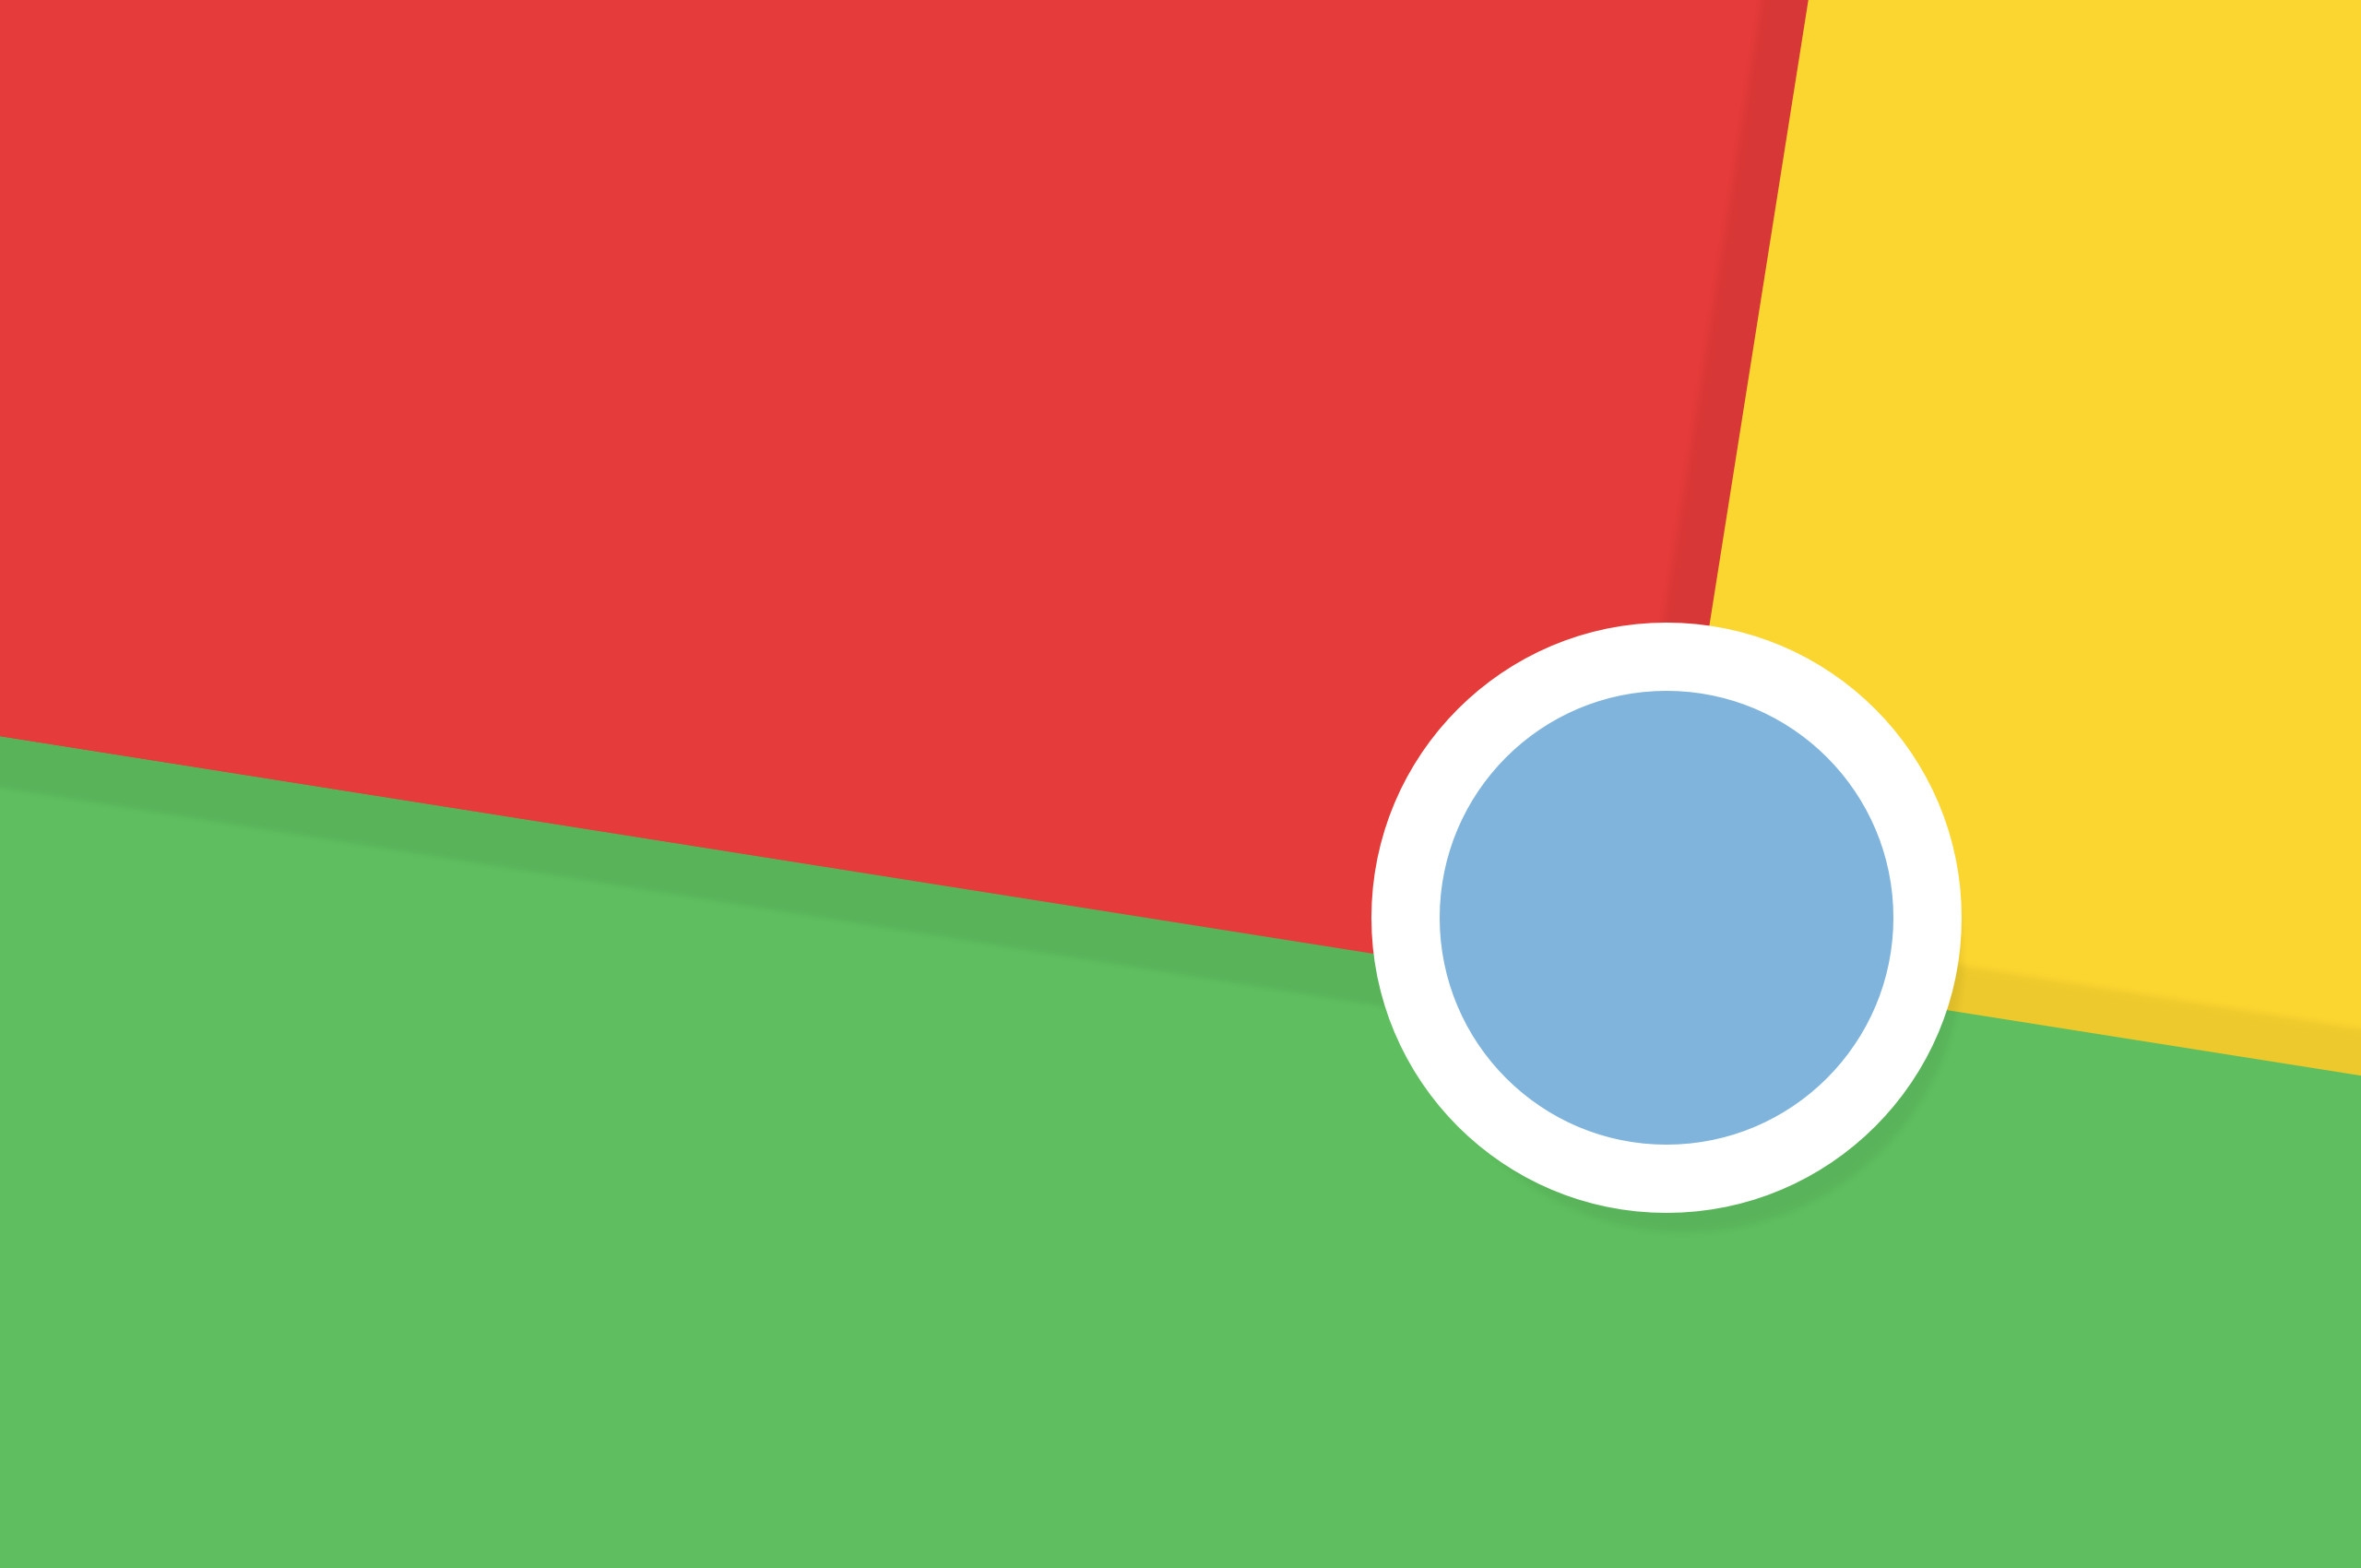 Google Chrome logo com estilo